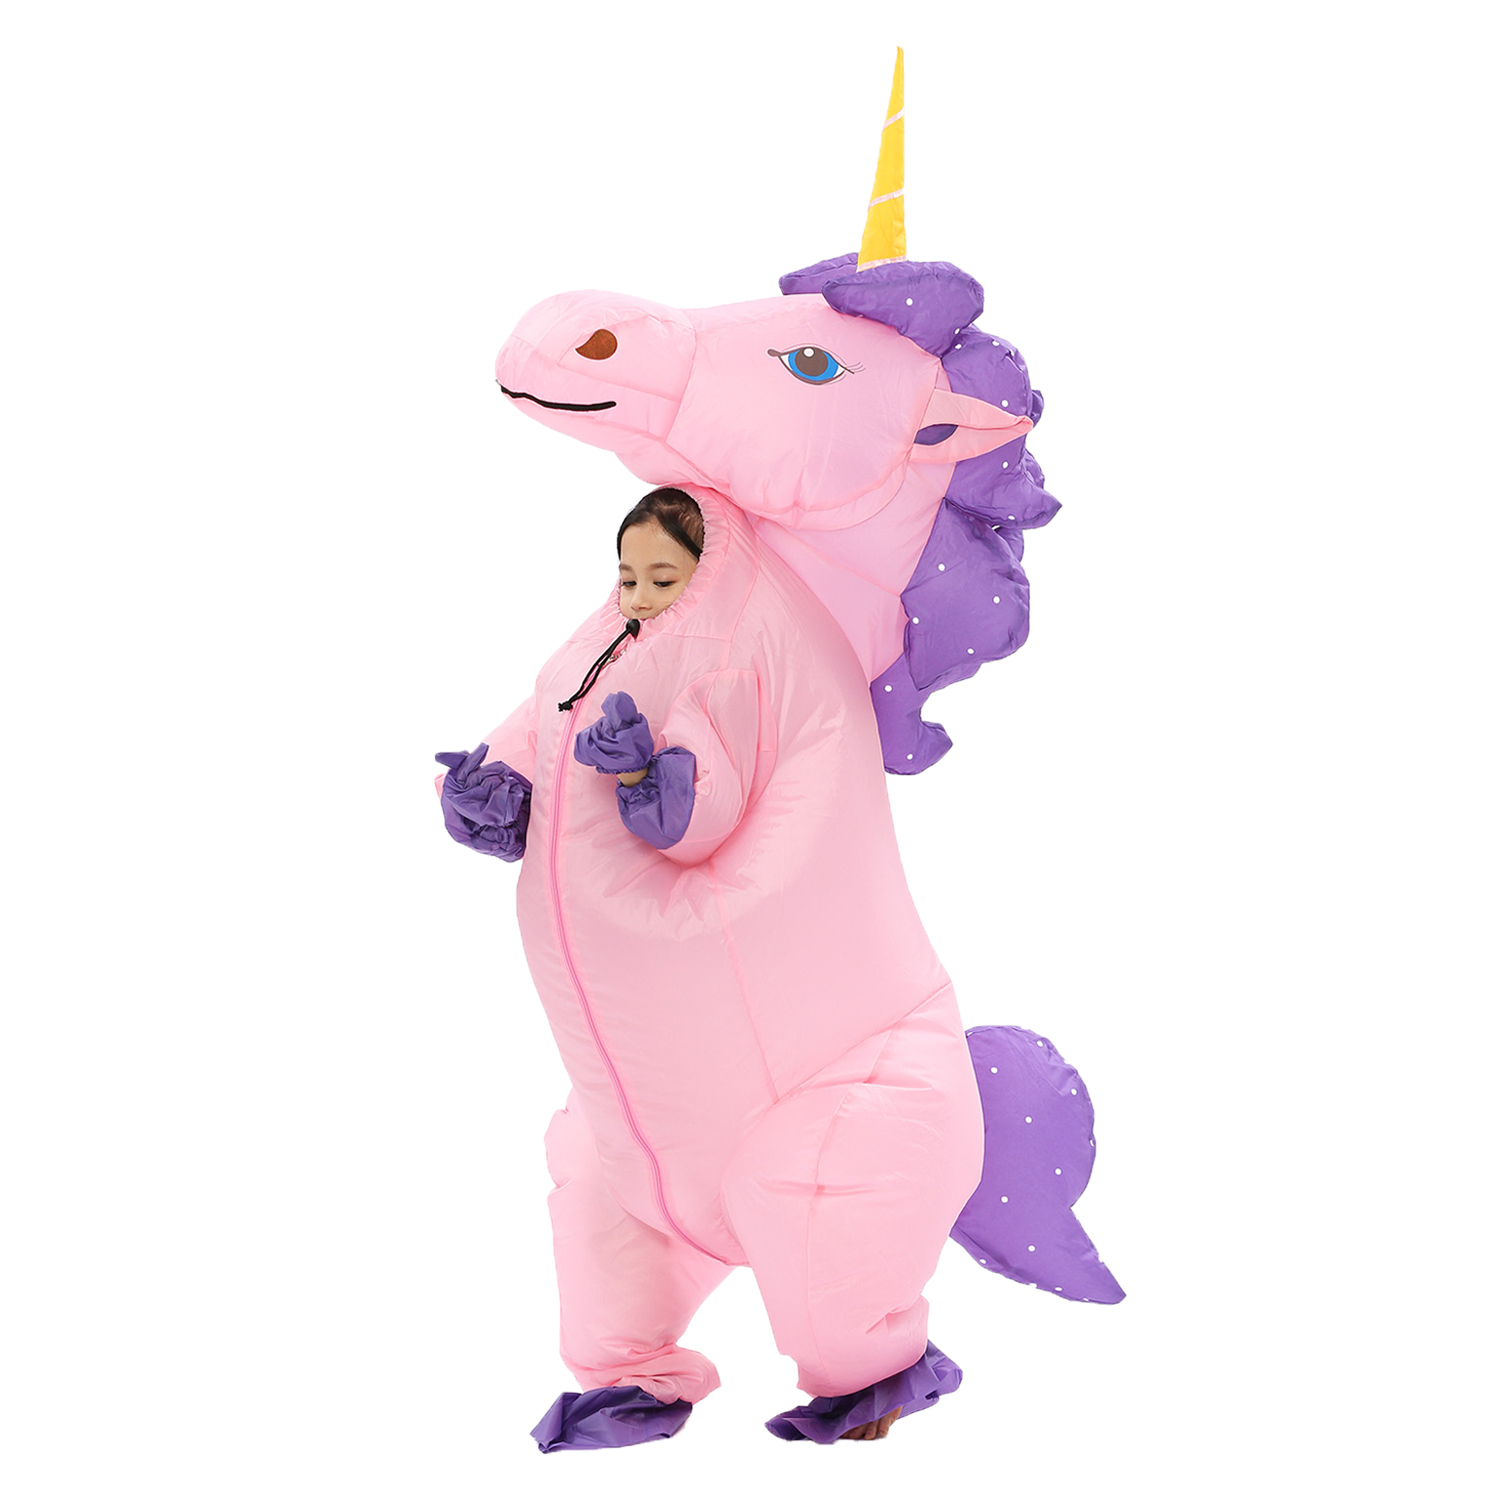 1b3555e70c740 New Adult Kids Inflatable Unicorn Costume Pony Halloween Costumes for Women  Men Cosplay Fantasia Party Inflatable Suit Jumpsuit